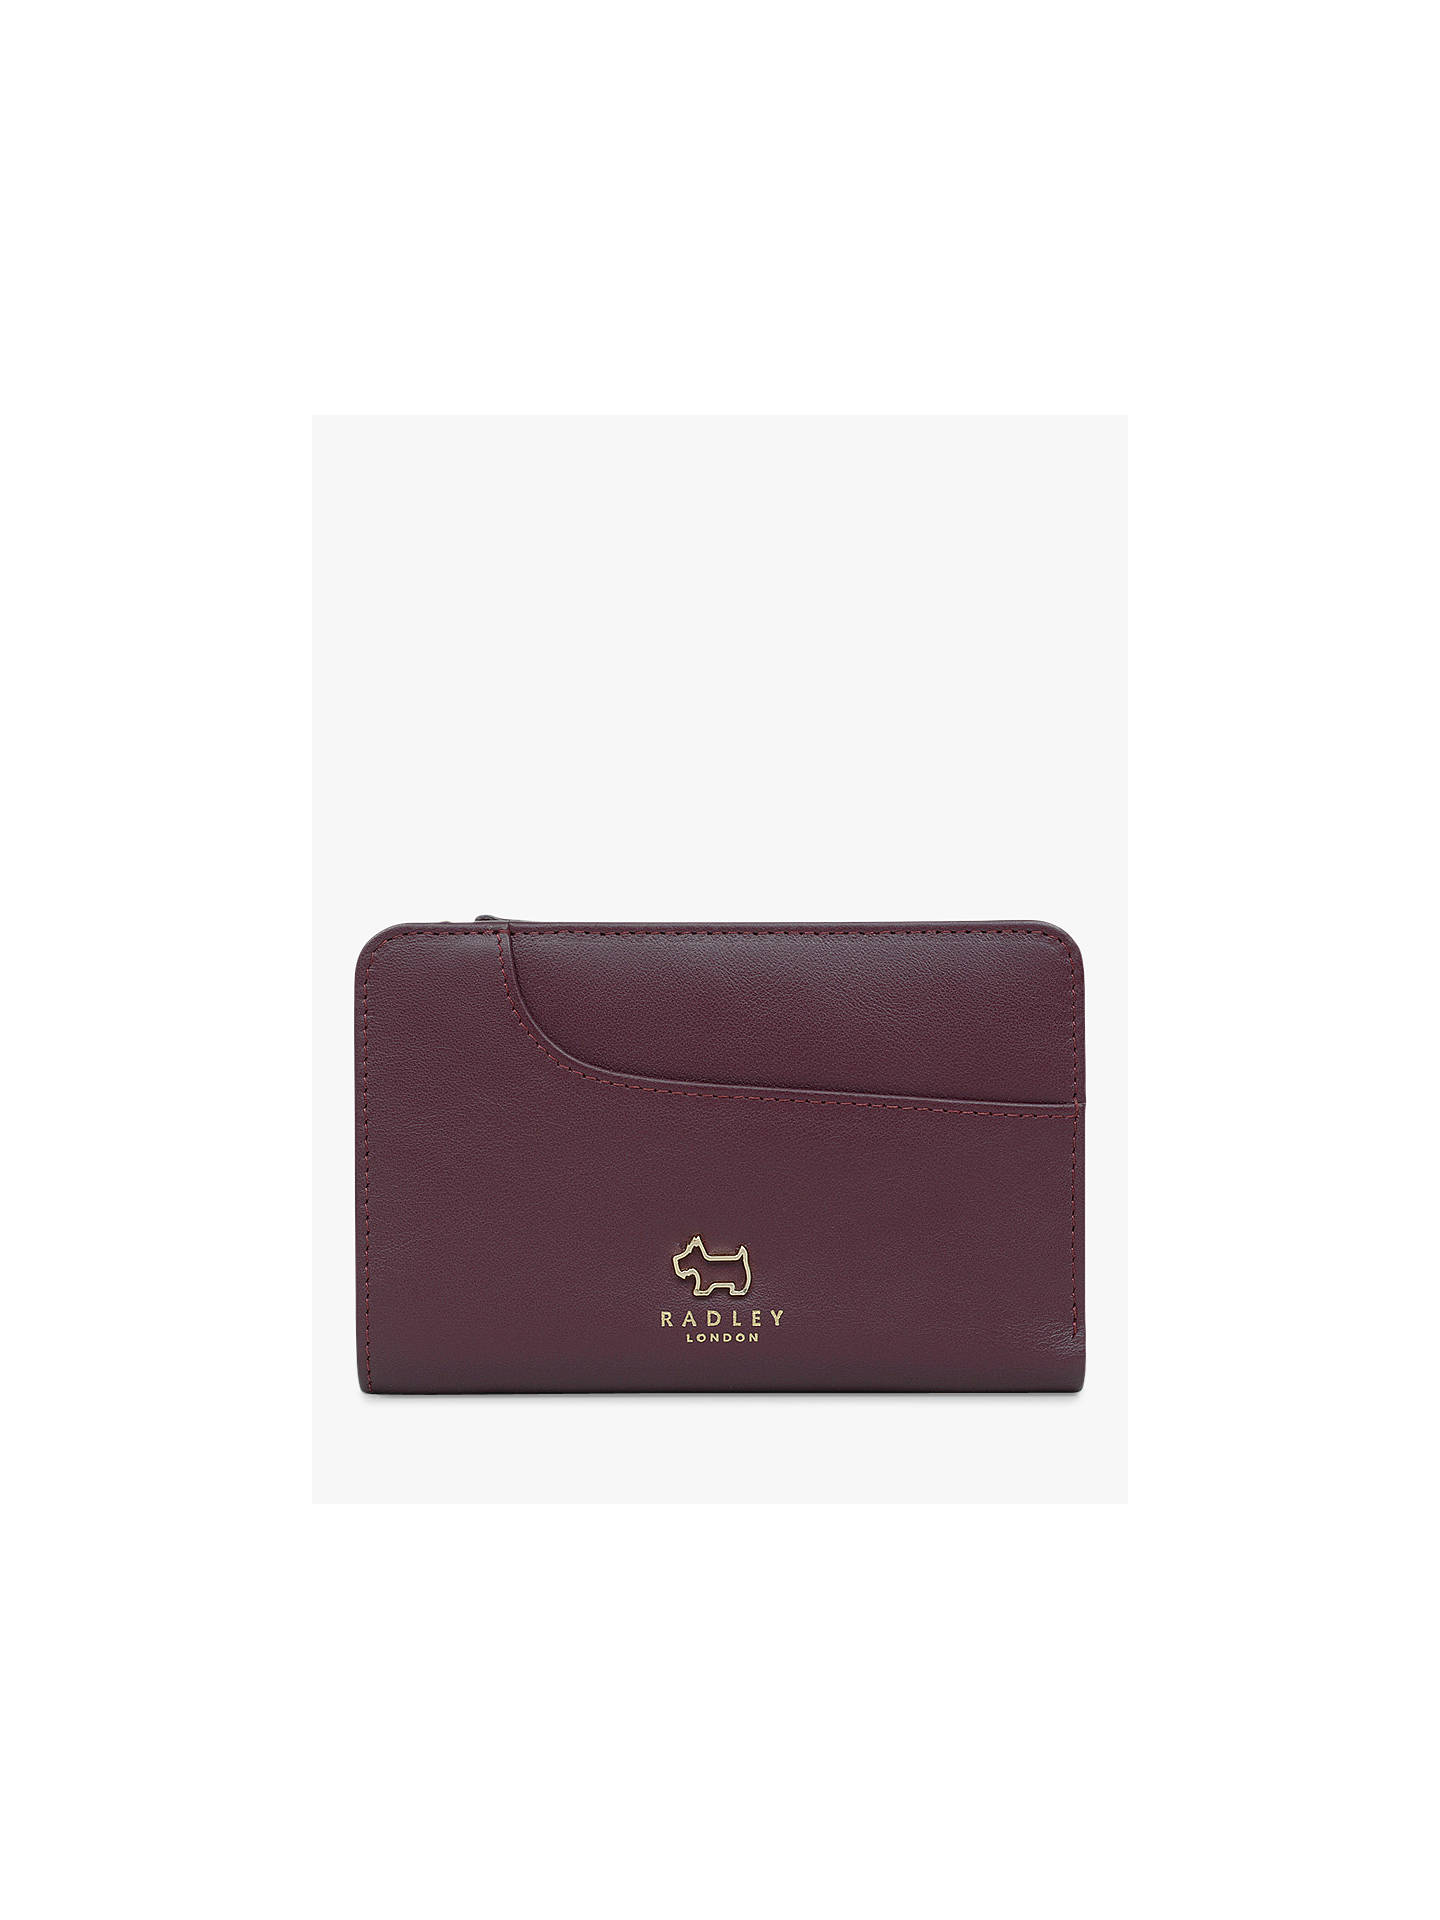 BuyRadley Pockets Leather Medium Zip-Top Purse, Red Online at johnlewis.com